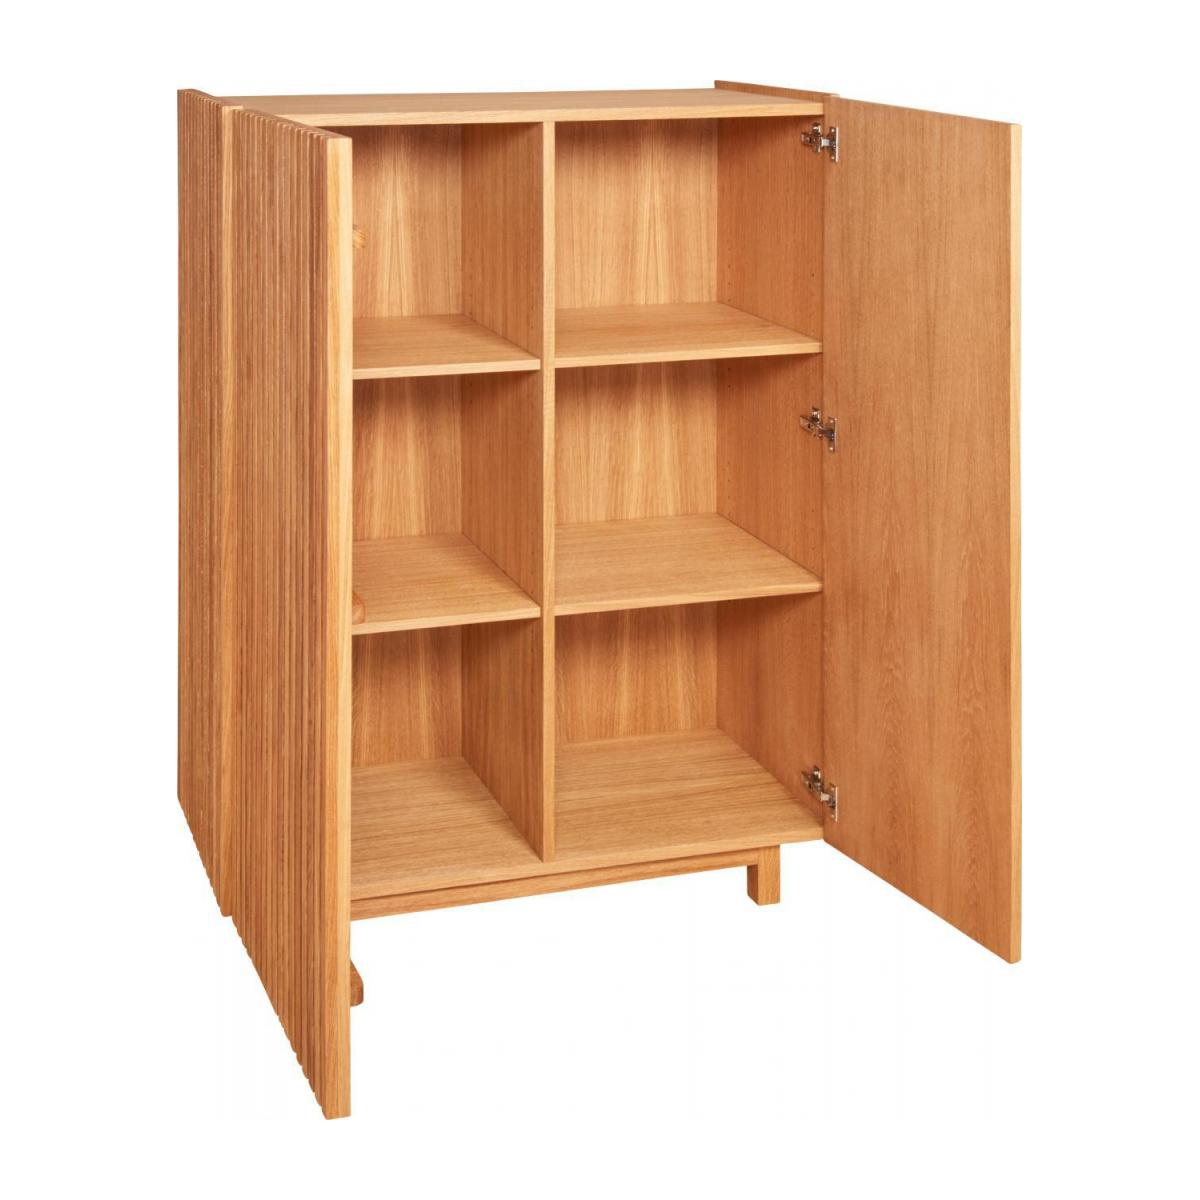 2 doors oak high storage n°3